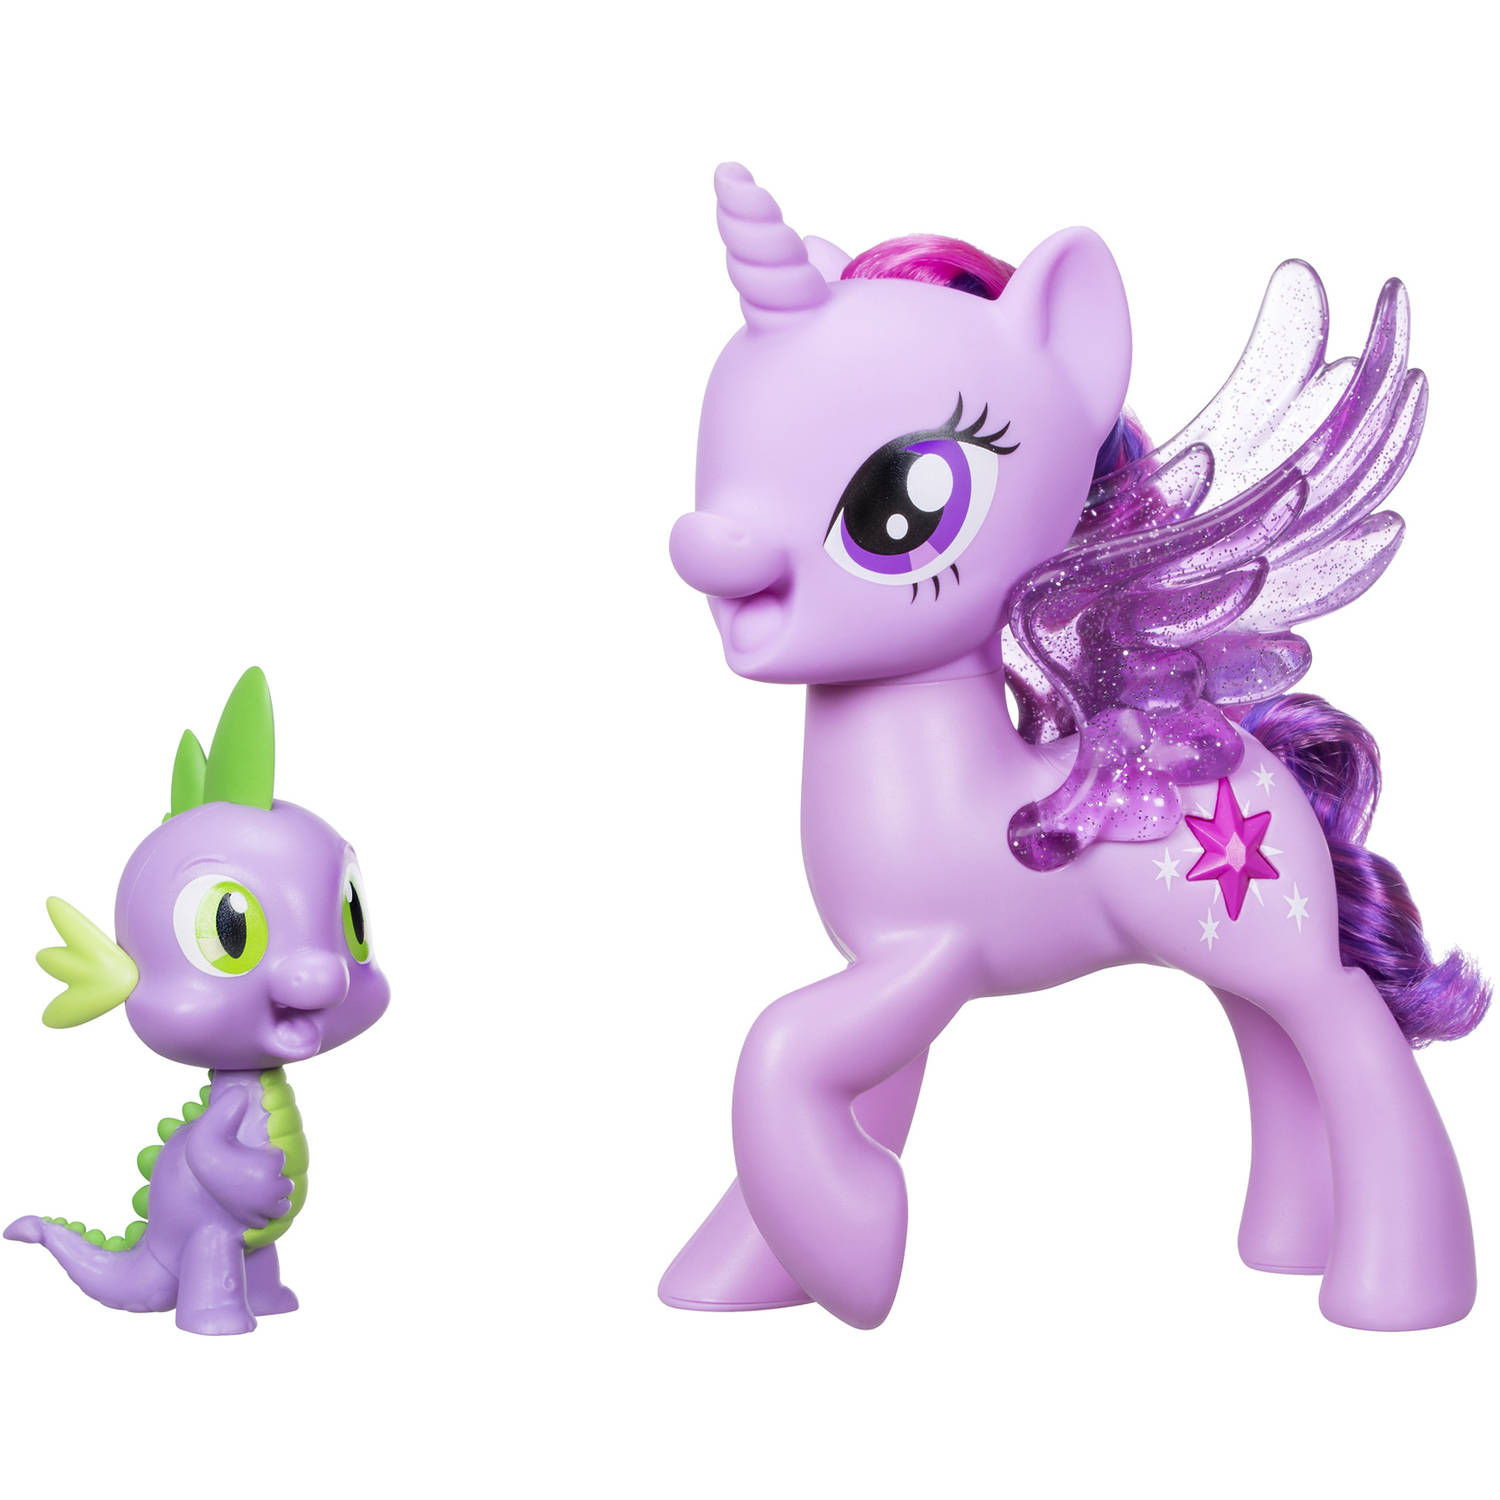 My Little Pony Princess Twilight Sparkle Spike the Dragon Friendship Duet by Hasbro